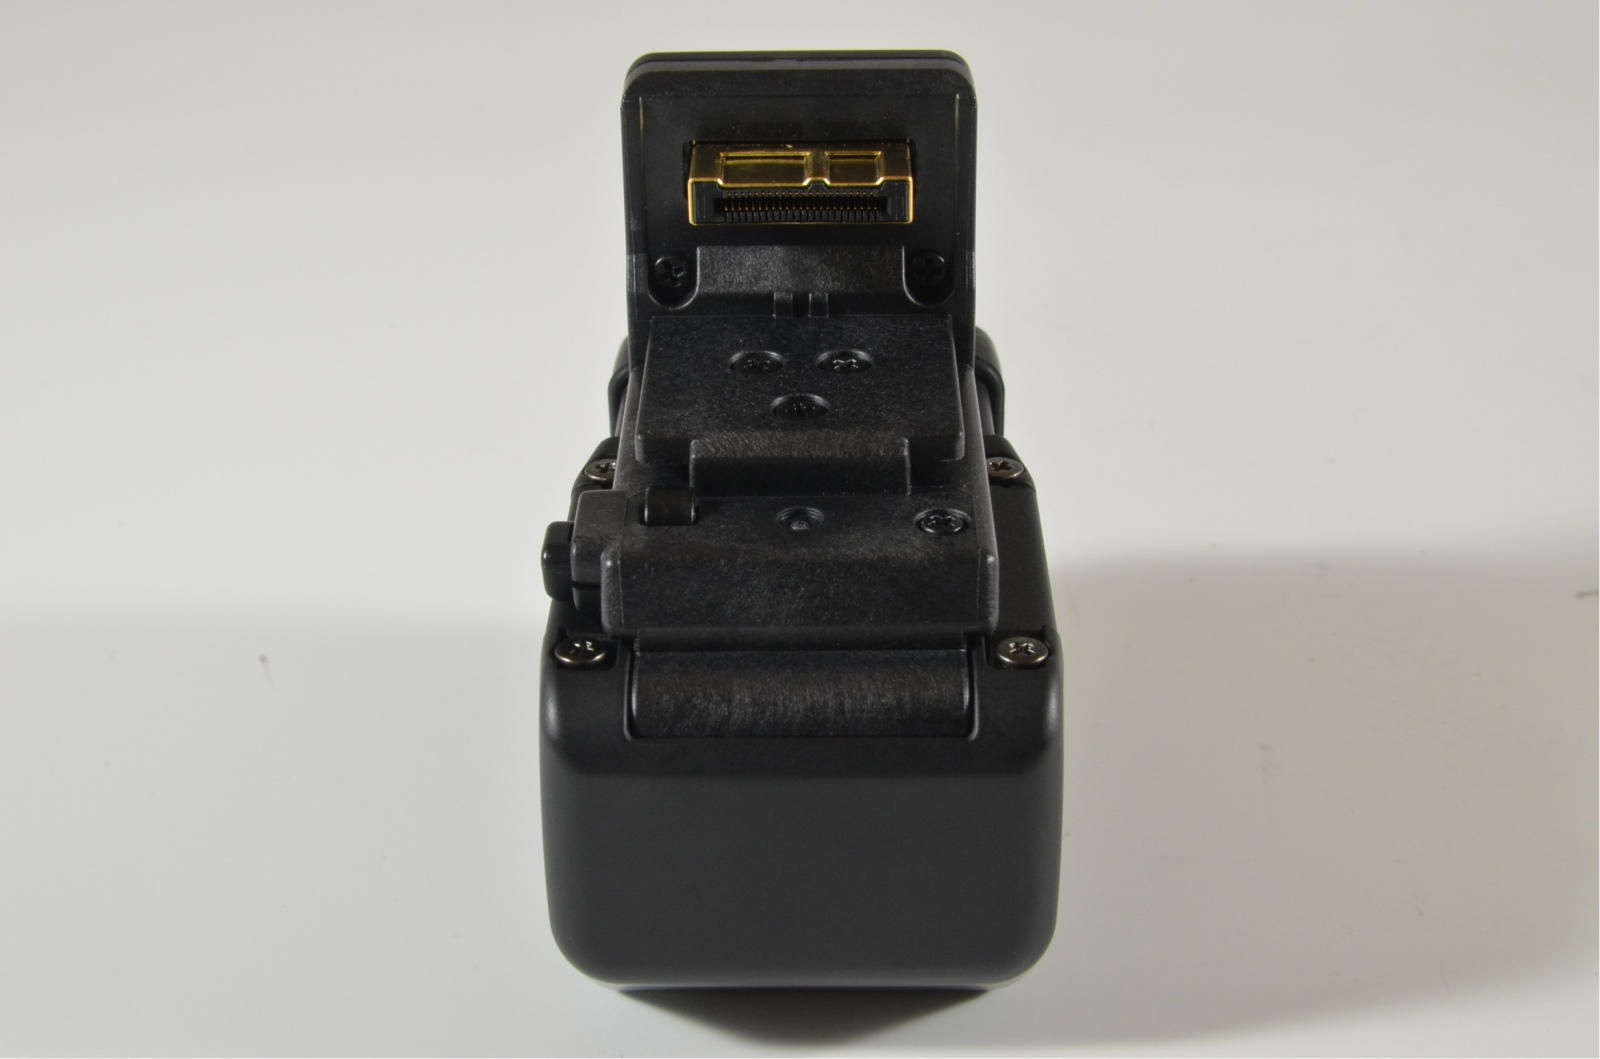 leica evf3 electronic viewfinder for d-lux6